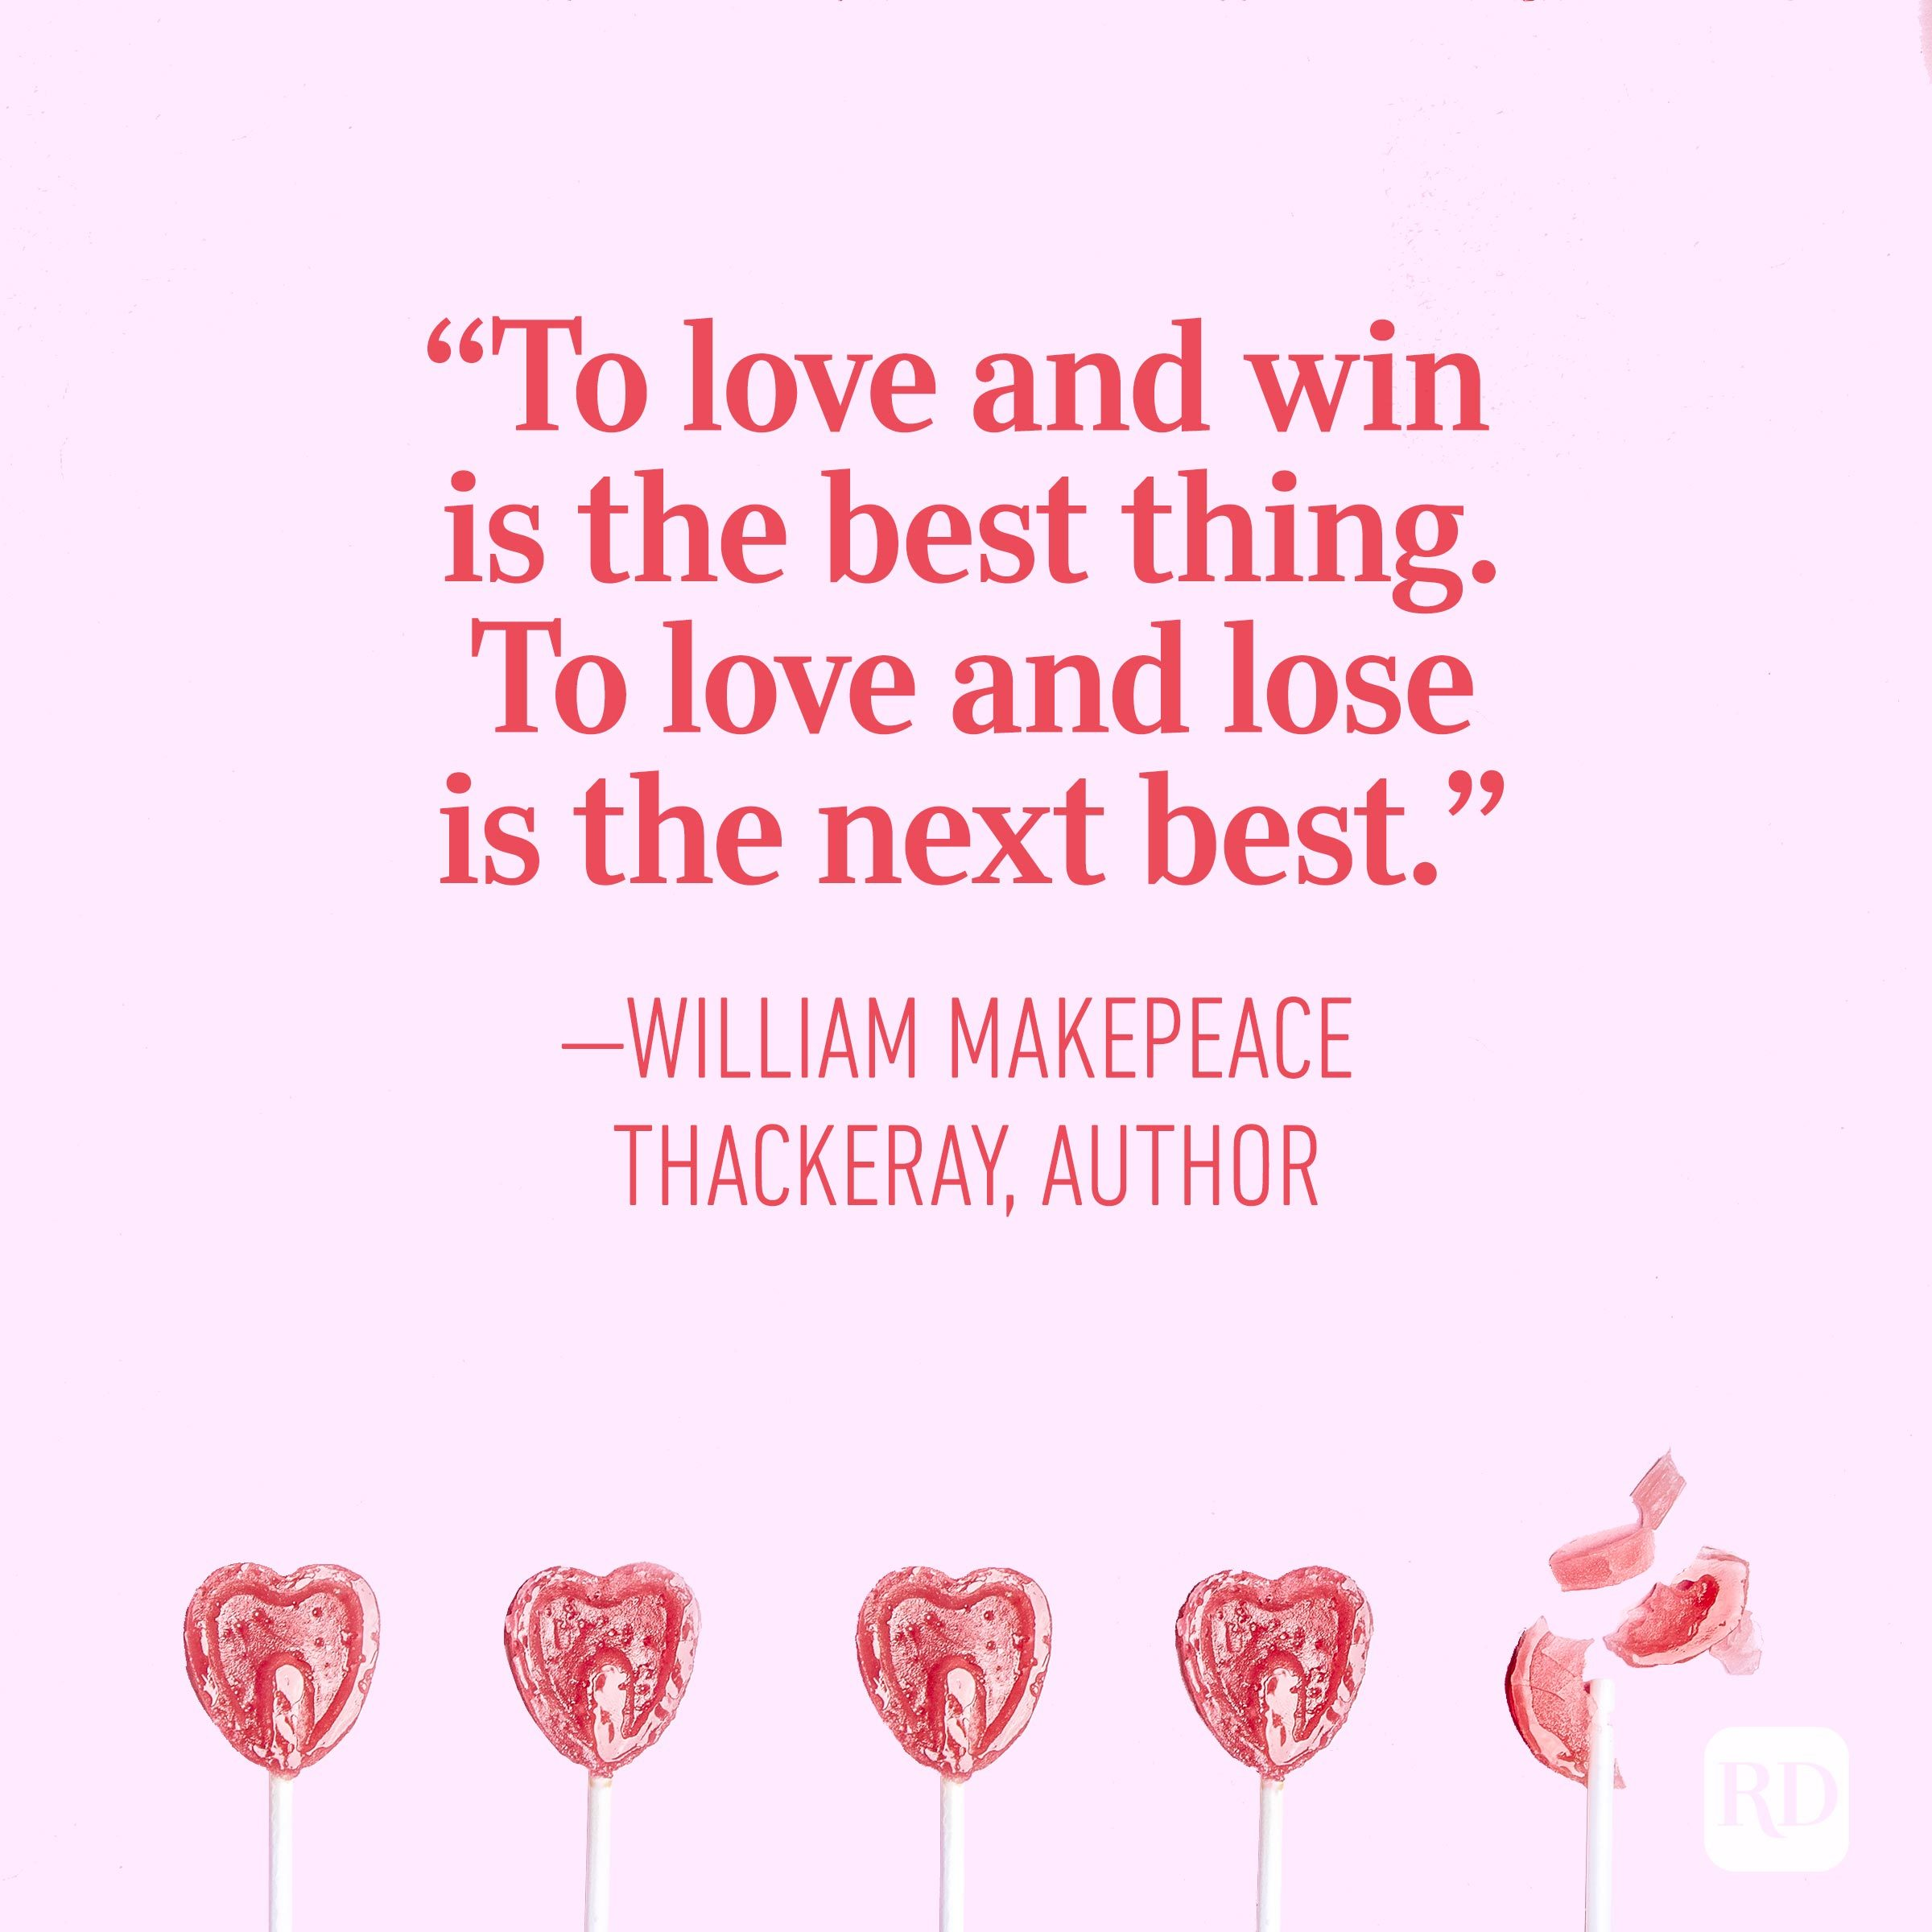 """To love and win is the best thing. To love and lose is the next best."" – William Makepeace Thackeray, author"